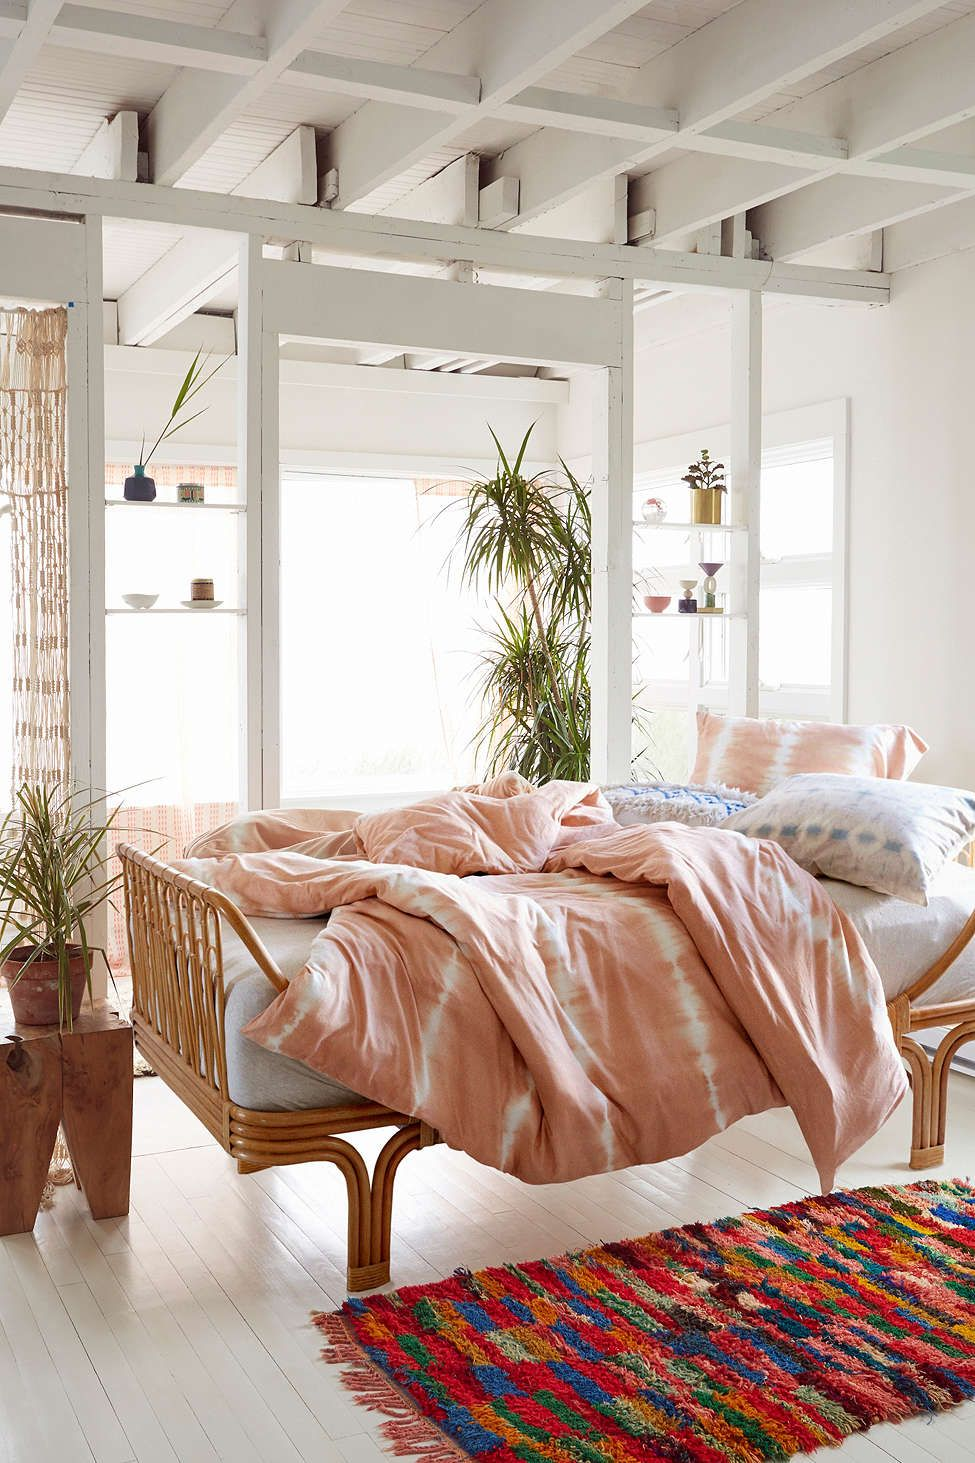 exciting bedroom style bohemian bedding | Light bohemian bedroom with a pink Urban Outfitters duvet ...